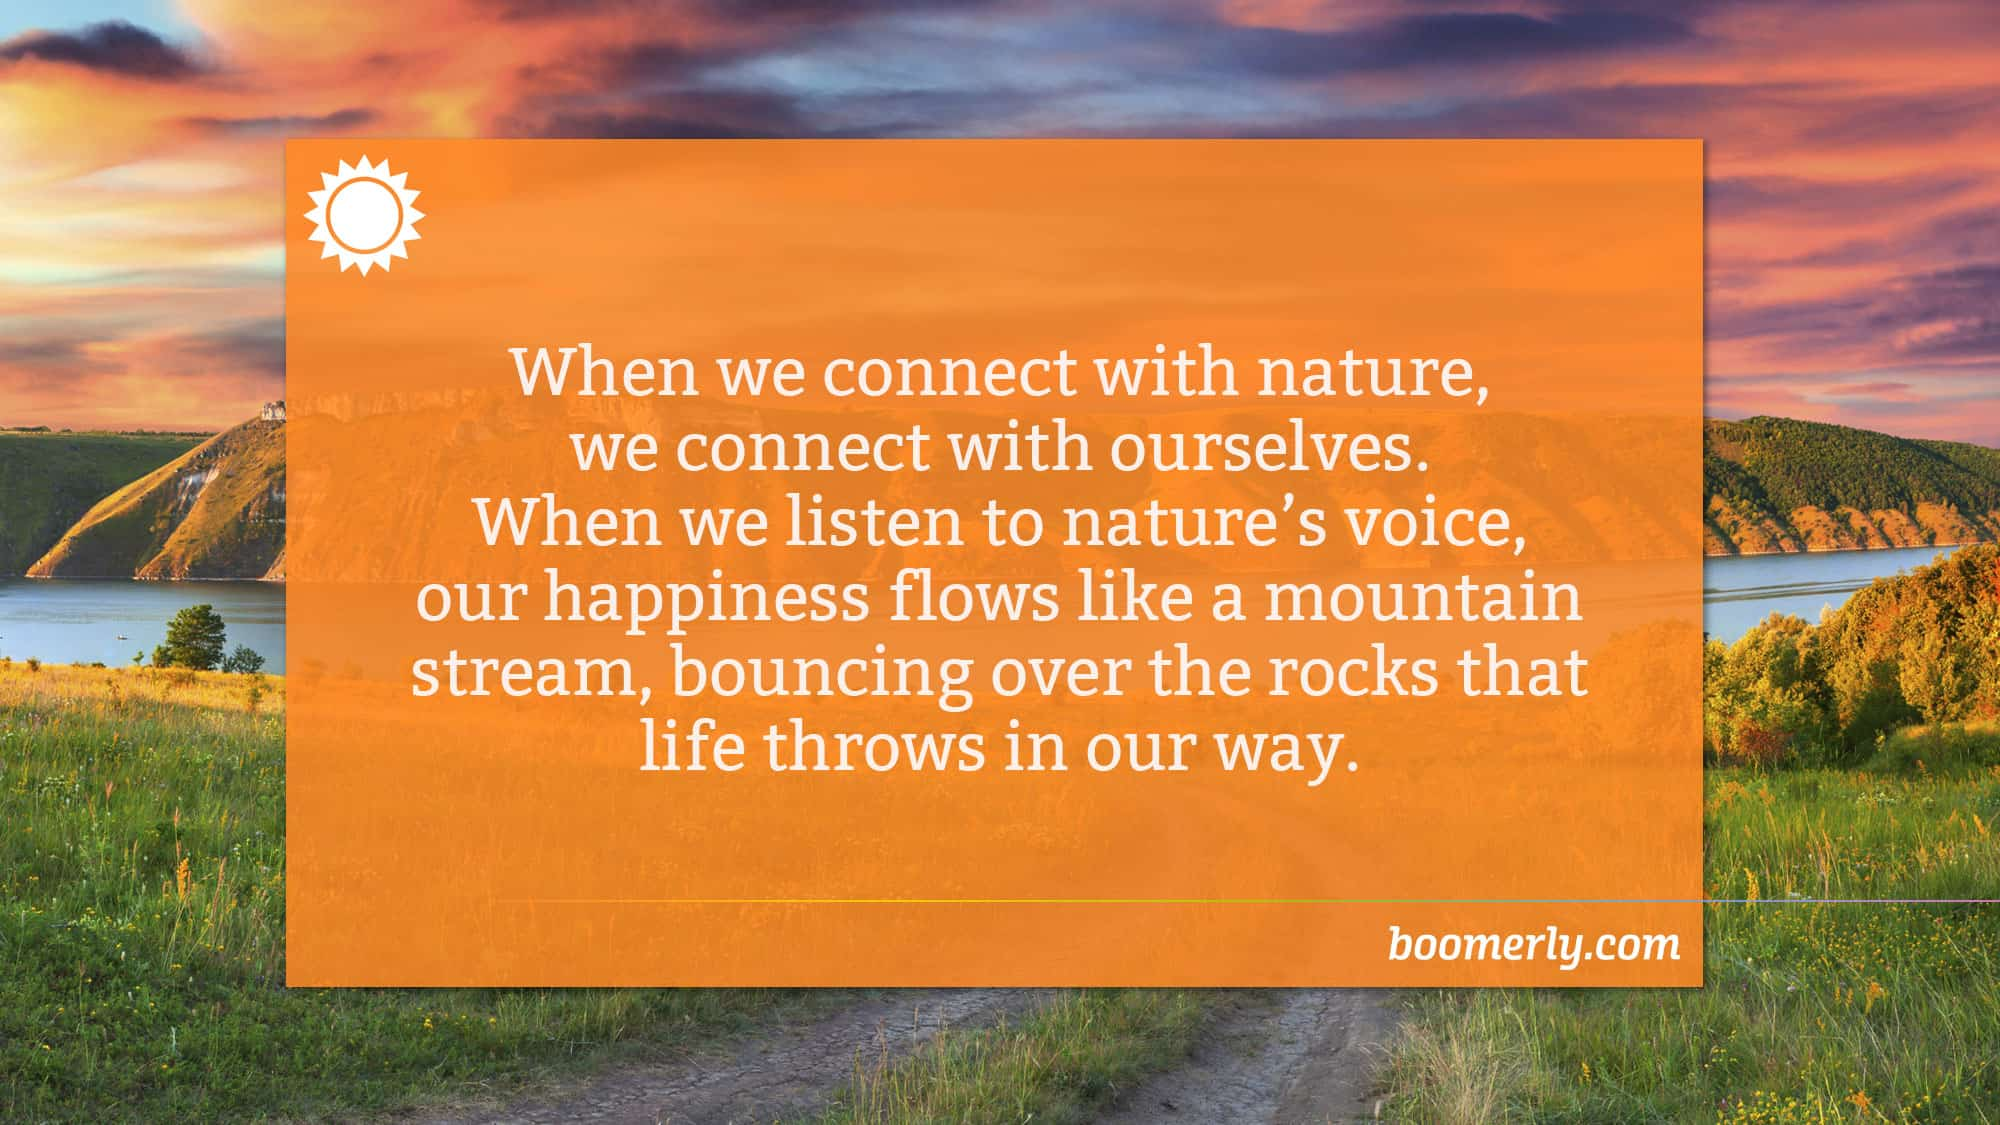 Boomerly.com - When we connect with nature, we connect with ourselves. When we listen to nature's voice, our happiness flows like a mountain stream, bouncing over the rocks that life throws in our way.